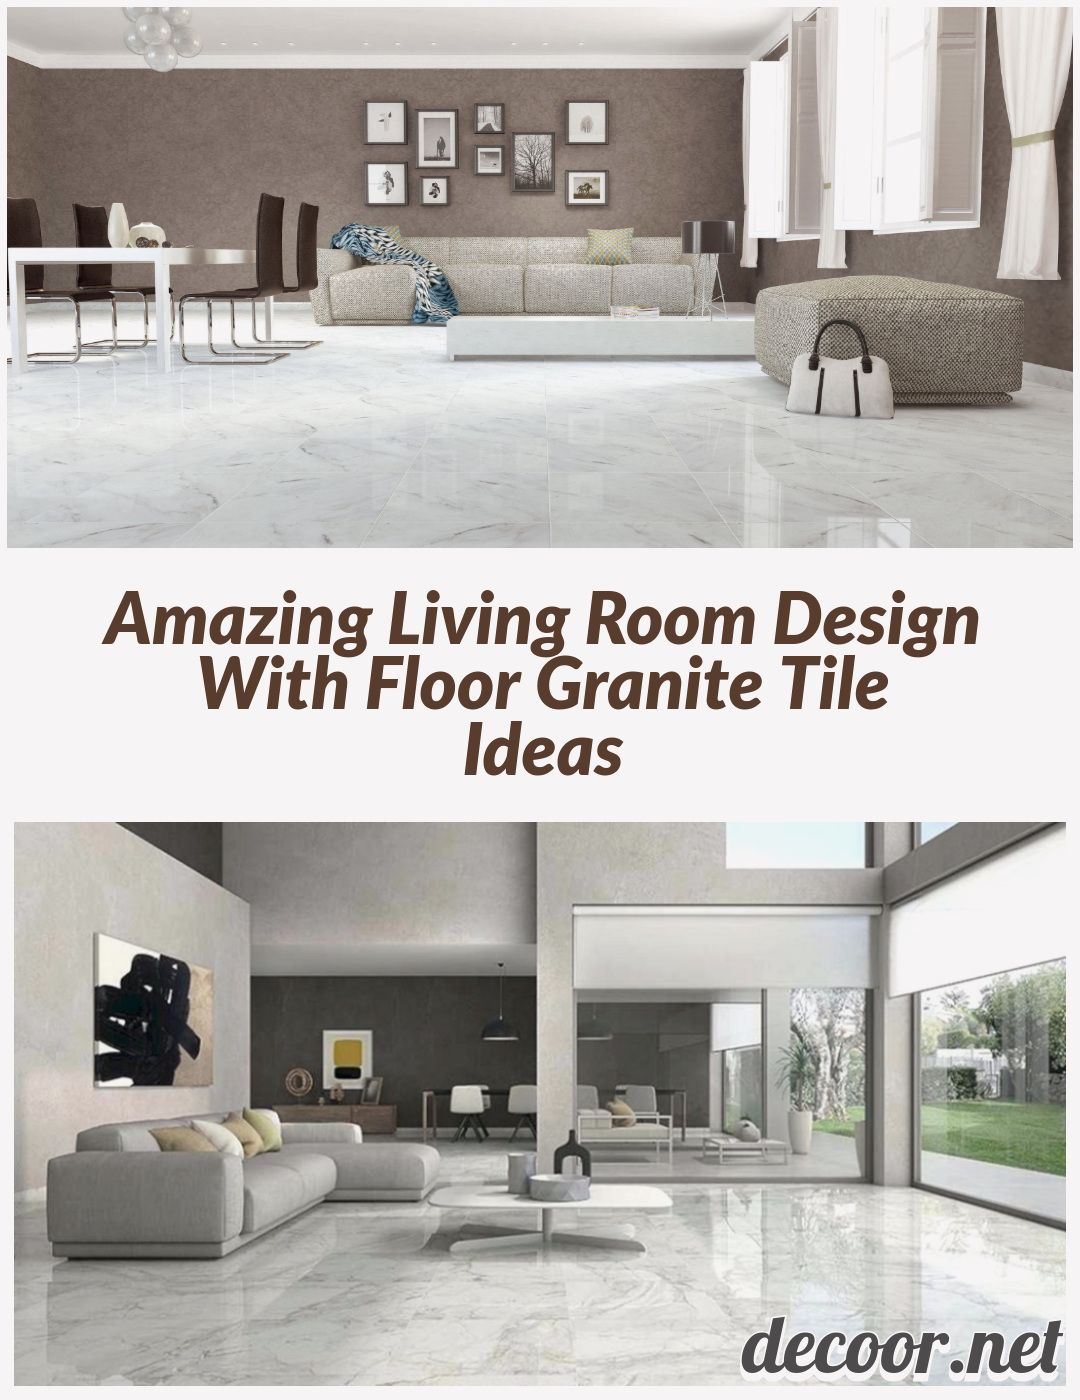 17 Floor Granite Tiles Design In 2020 Floor Design Living